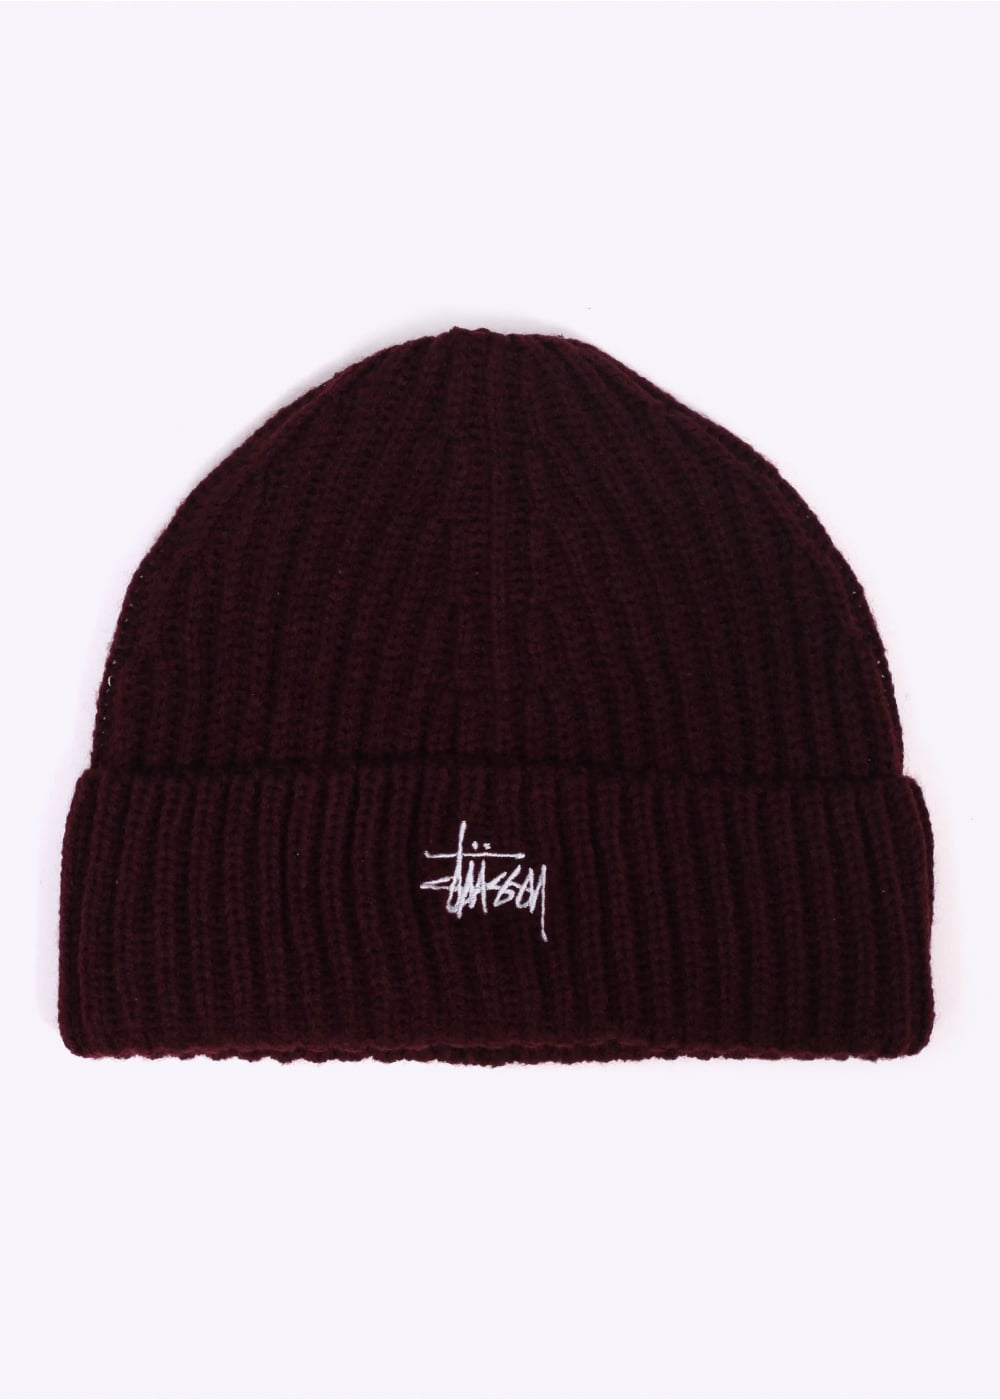 Stussy Stock Cuff Beanie - Burgundy - Headwear from Triads UK 9cfc8e5cb58